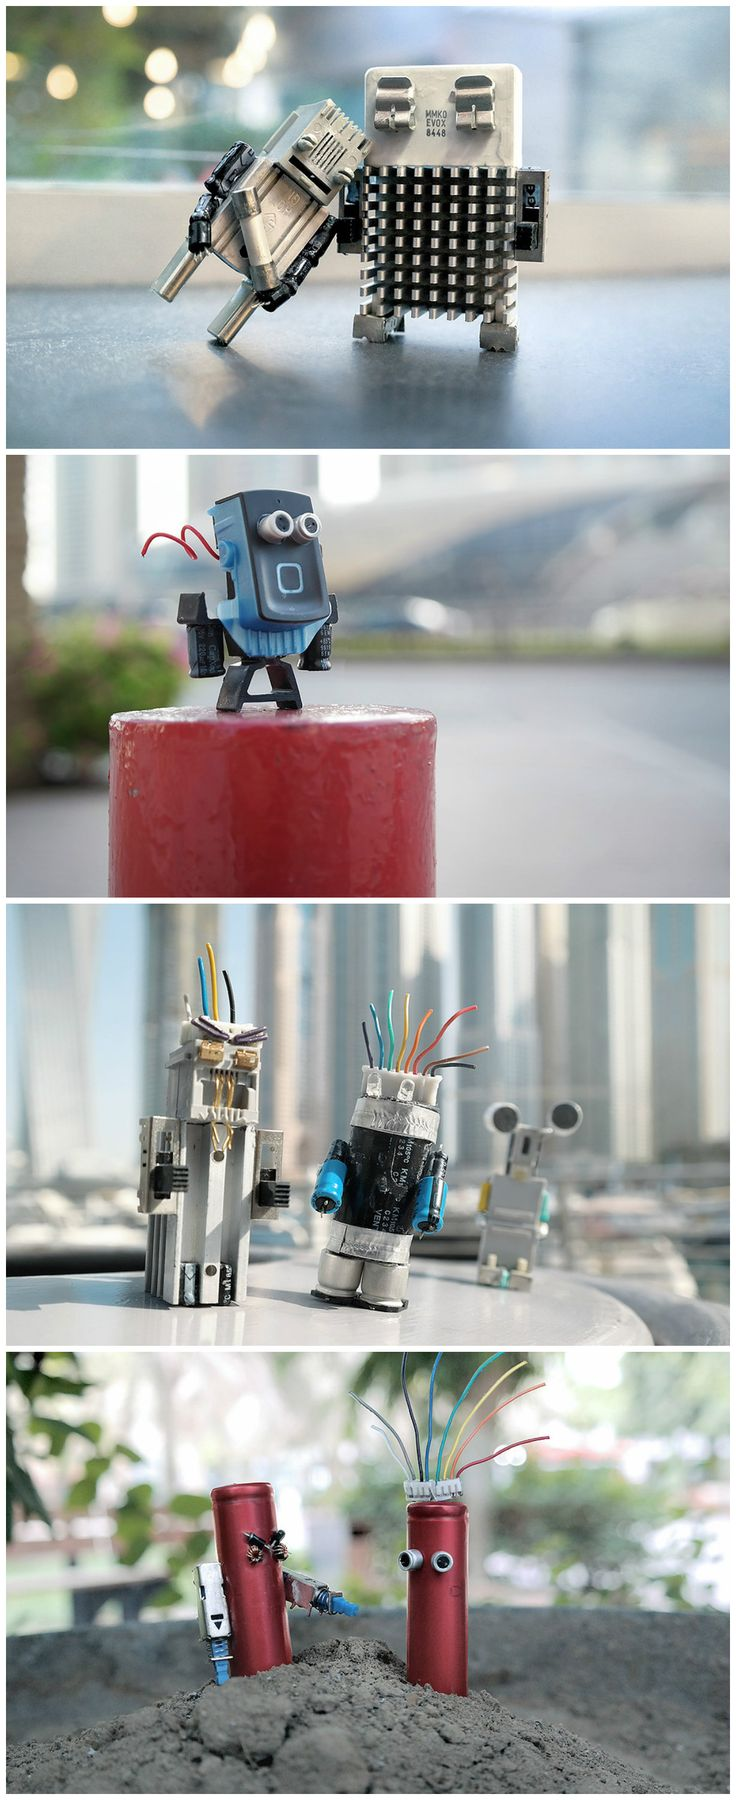 Cool toys/ action figures made from old unwanted tech #ewaste #gogreen #ReduceReuseRecycle... Where will this go to die?